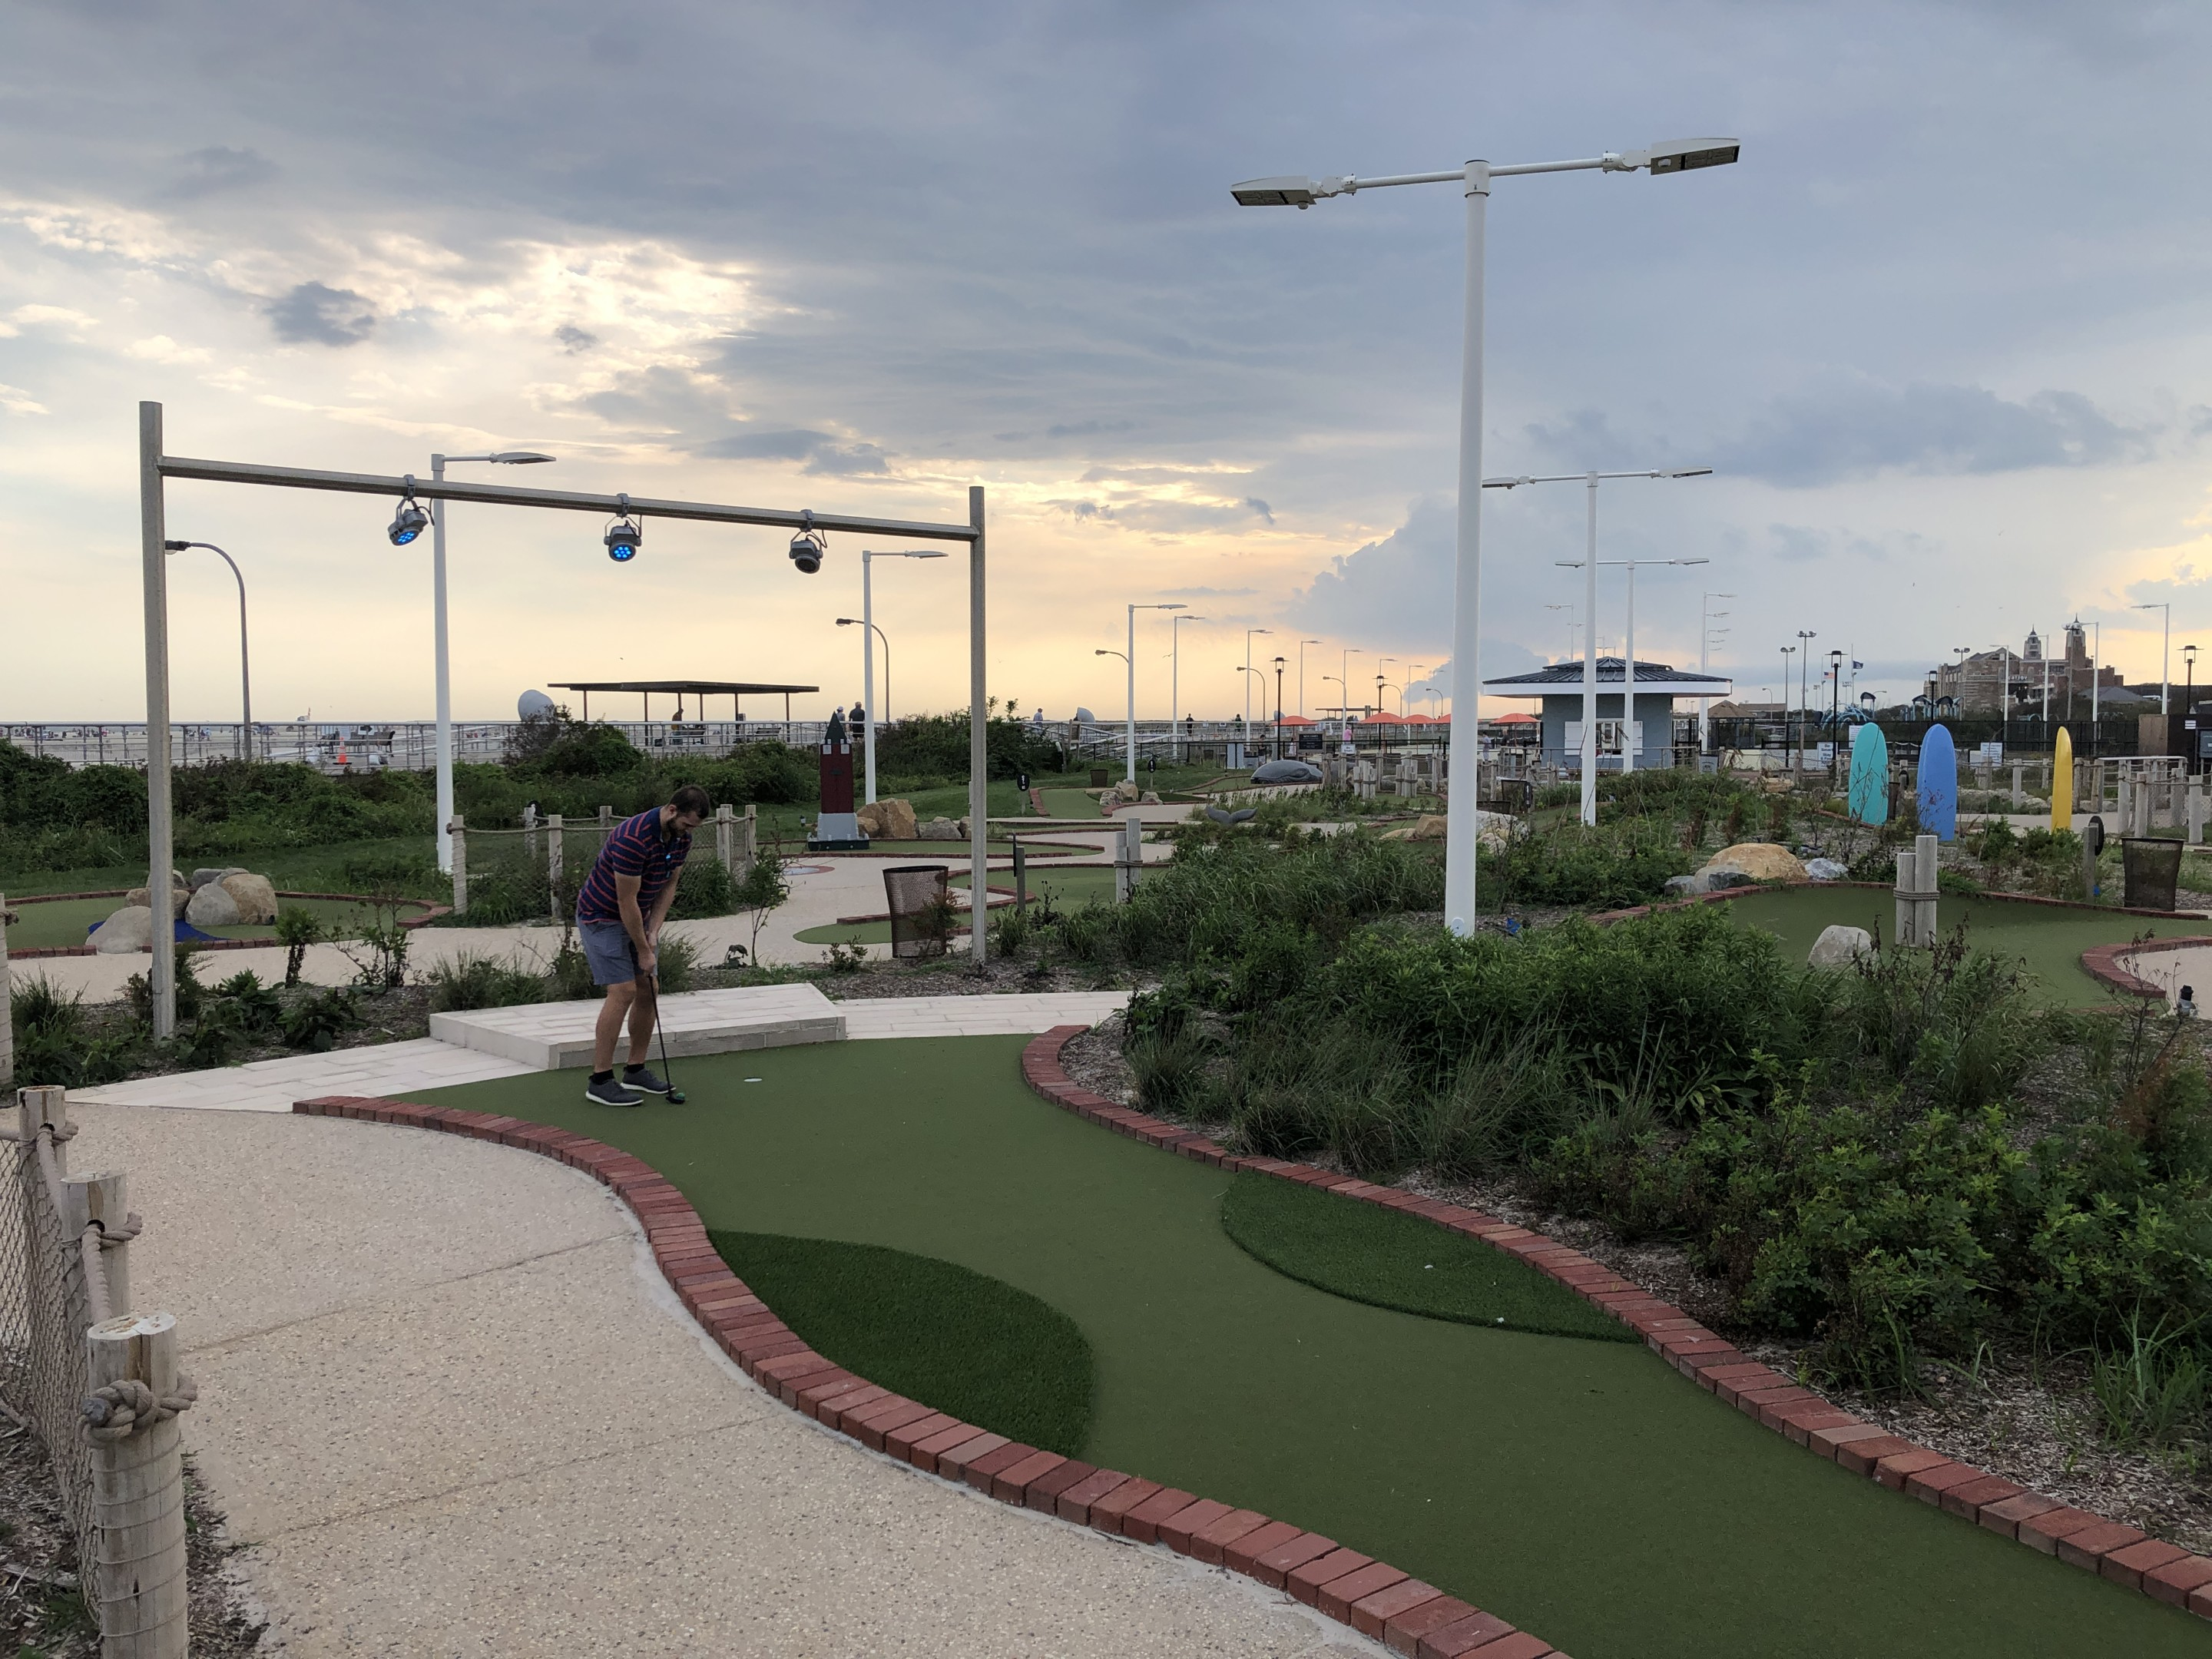 Looking at artificial turf on a mini golf course